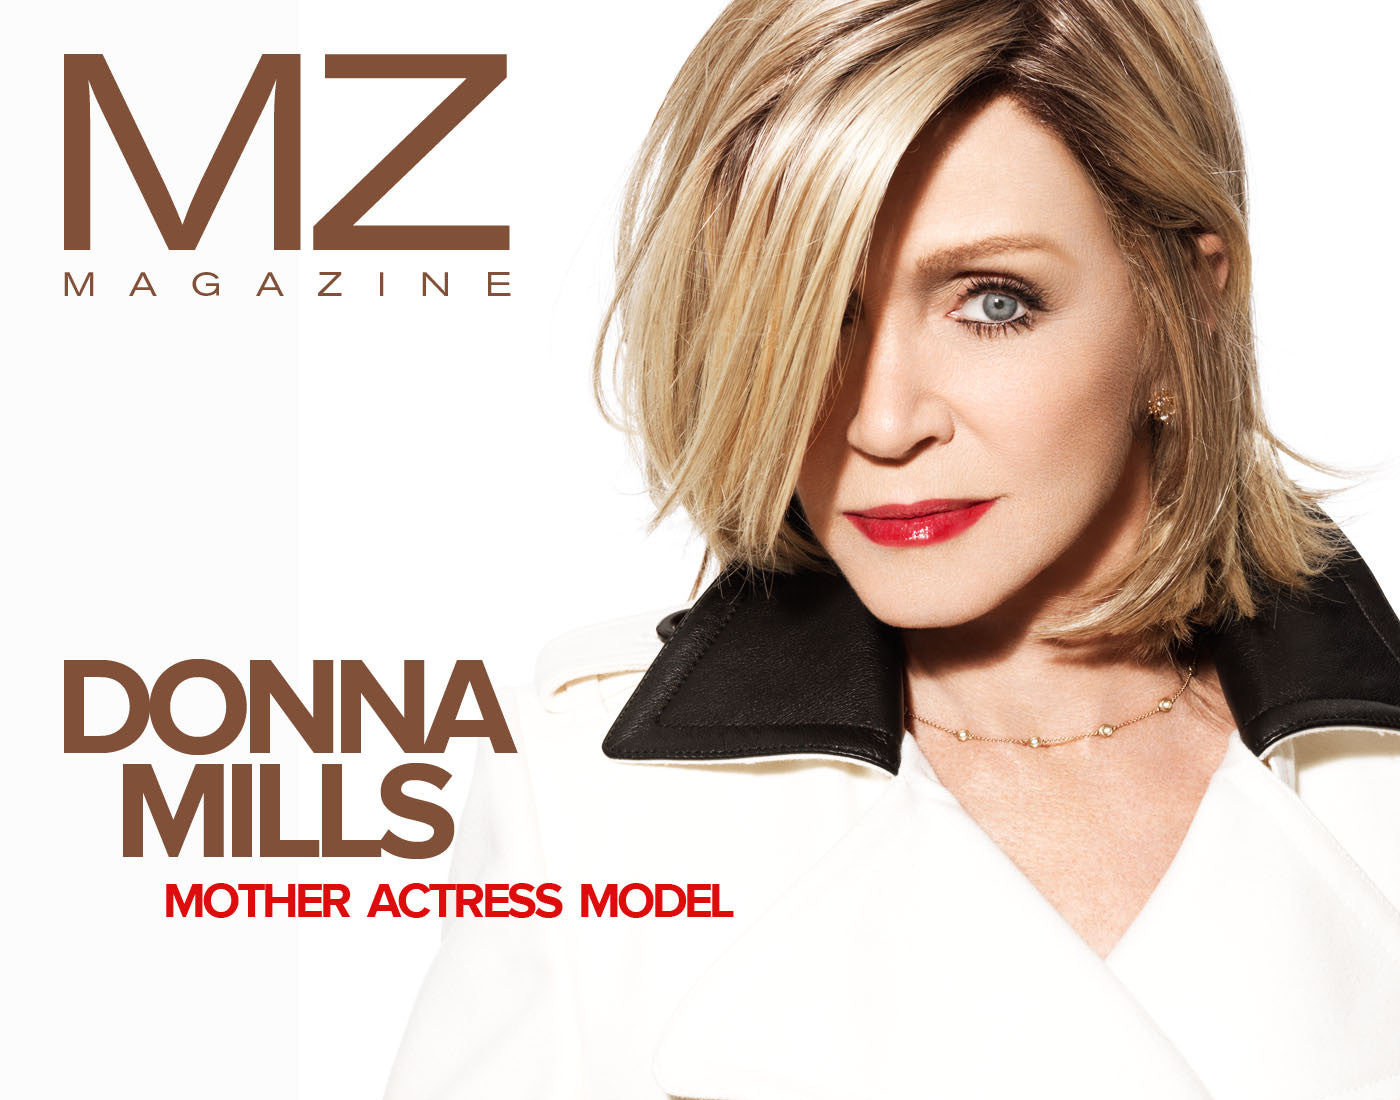 EXCLUSIVE INTERVIEW WITH DONNA MILLS